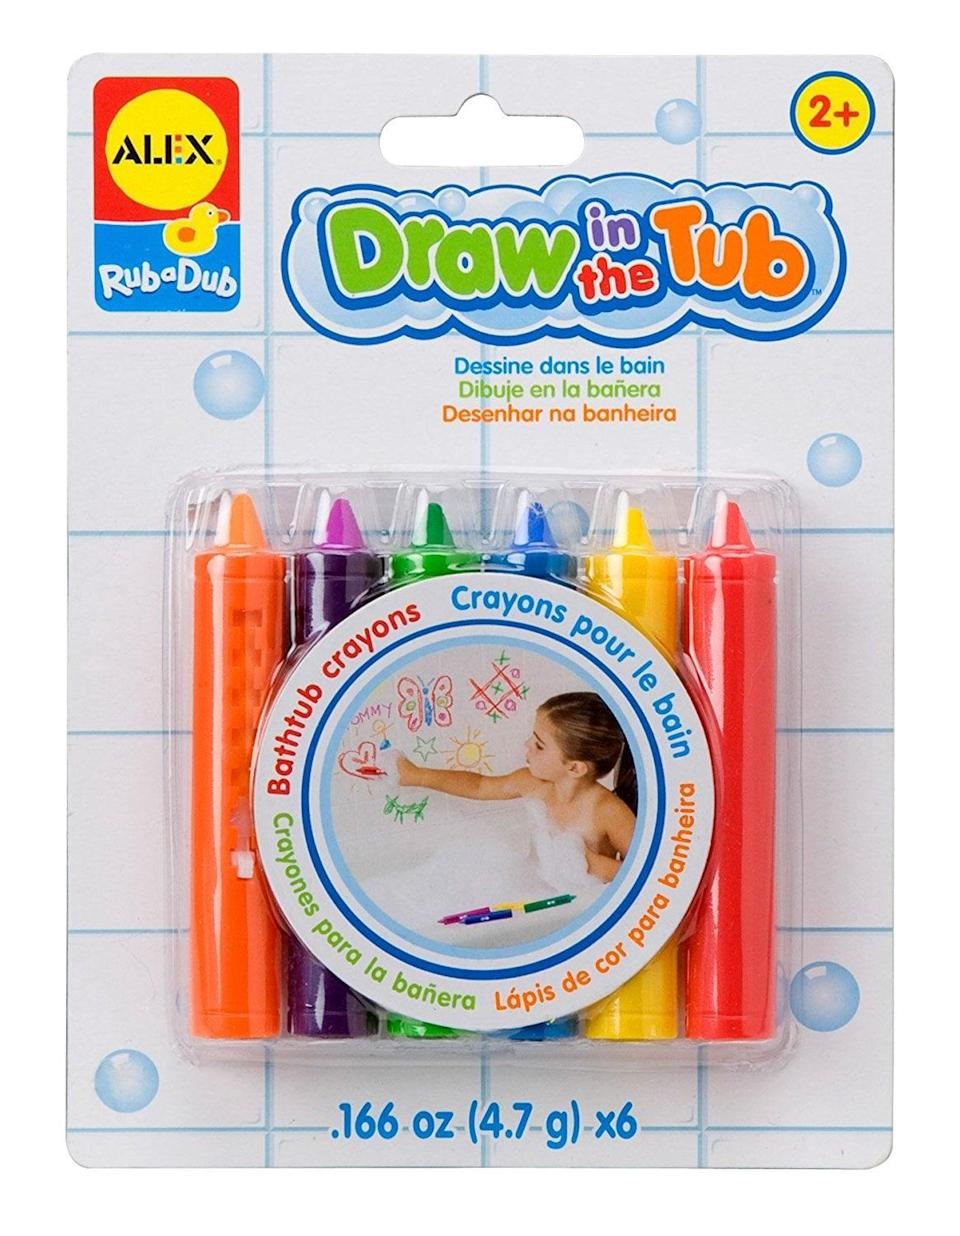 "<p>Bath time has never been this fun. With <a href=""https://www.popsugar.com/buy/ALEX-Toys-Rub-Dub-Draw-Tub-Crayons-423248?p_name=ALEX%20Toys%20Rub%20a%20Dub%20Draw%20in%20the%20Tub%20Crayons&retailer=amazon.com&pid=423248&price=9&evar1=moms%3Aus&evar9=25800161&evar98=https%3A%2F%2Fwww.popsugar.com%2Fphoto-gallery%2F25800161%2Fimage%2F44870145%2FALEX-Toys-Rub-Dub-Draw-Tub-Crayons&list1=gifts%2Choliday%2Cgift%20guide%2Cparenting%2Ckid%20shopping%2Choliday%20for%20kids%2Cgifts%20for%20toddlers%2Cbest%20of%202019&prop13=api&pdata=1"" class=""link rapid-noclick-resp"" rel=""nofollow noopener"" target=""_blank"" data-ylk=""slk:ALEX Toys Rub a Dub Draw in the Tub Crayons"">ALEX Toys Rub a Dub Draw in the Tub Crayons</a> ($9), your little Picasso can create all they want, and you don't have to stress about a mess.</p>"